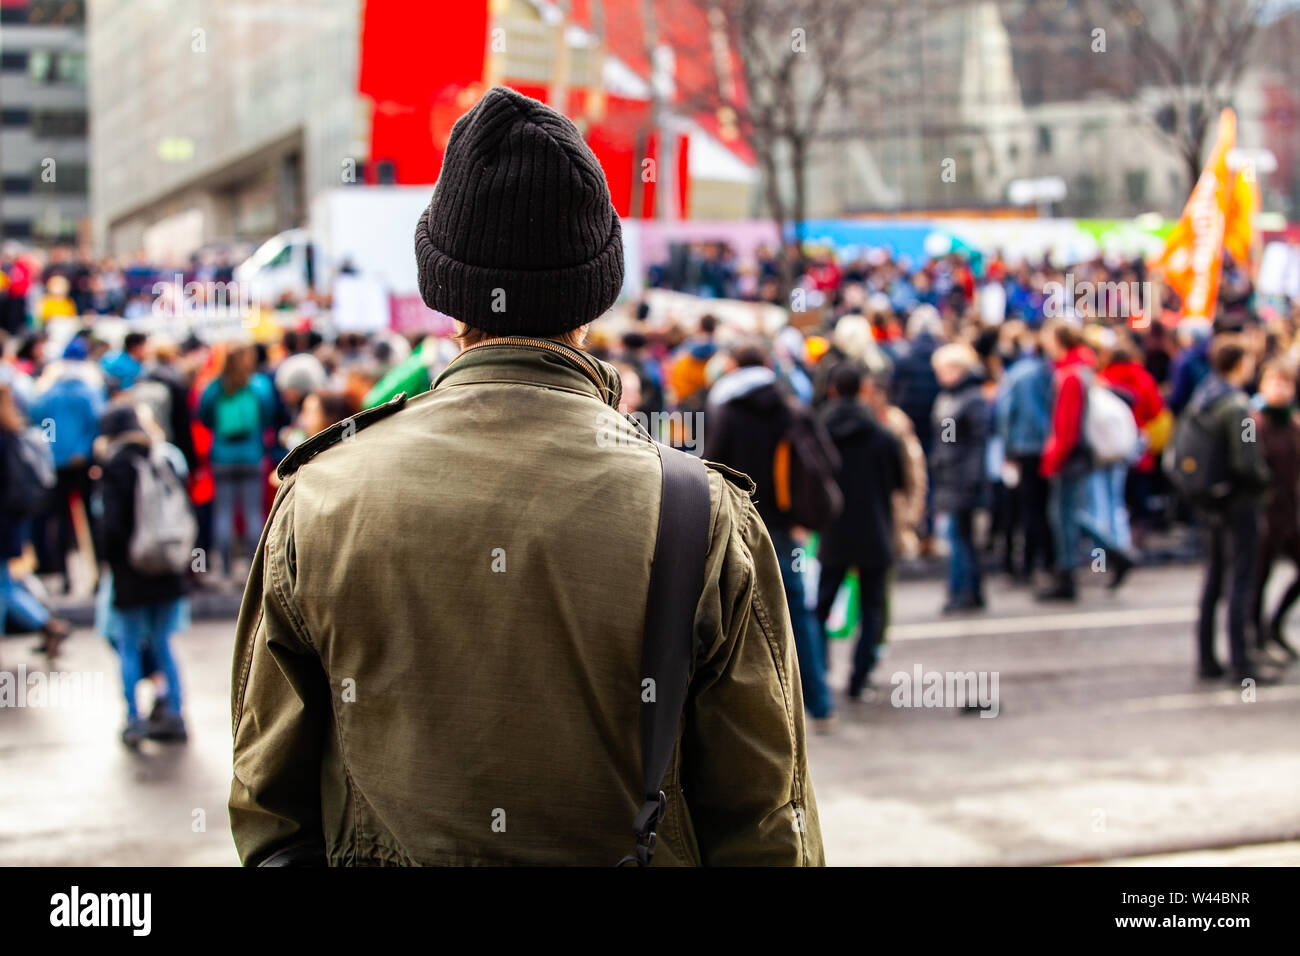 A young man is seen from the back, wearing an olive jacket and wooly hat, as eco-activists march against global warming in a blurry background. Stock Photo